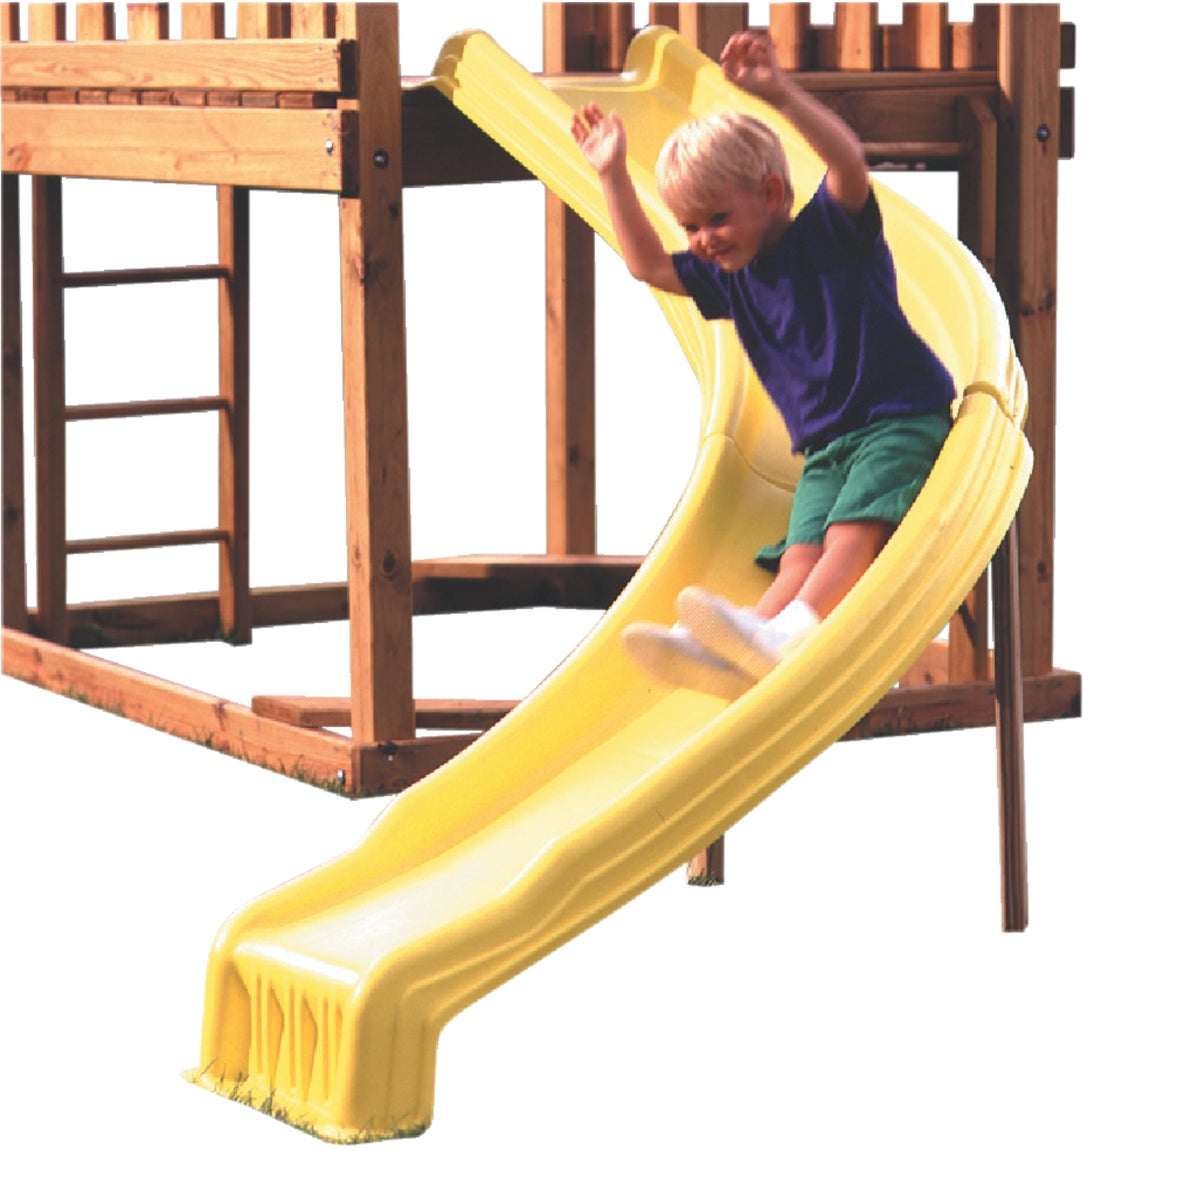 YELLOW SIDE WINDER SLIDE - NE4678-1YB by Swing N Slide Corp